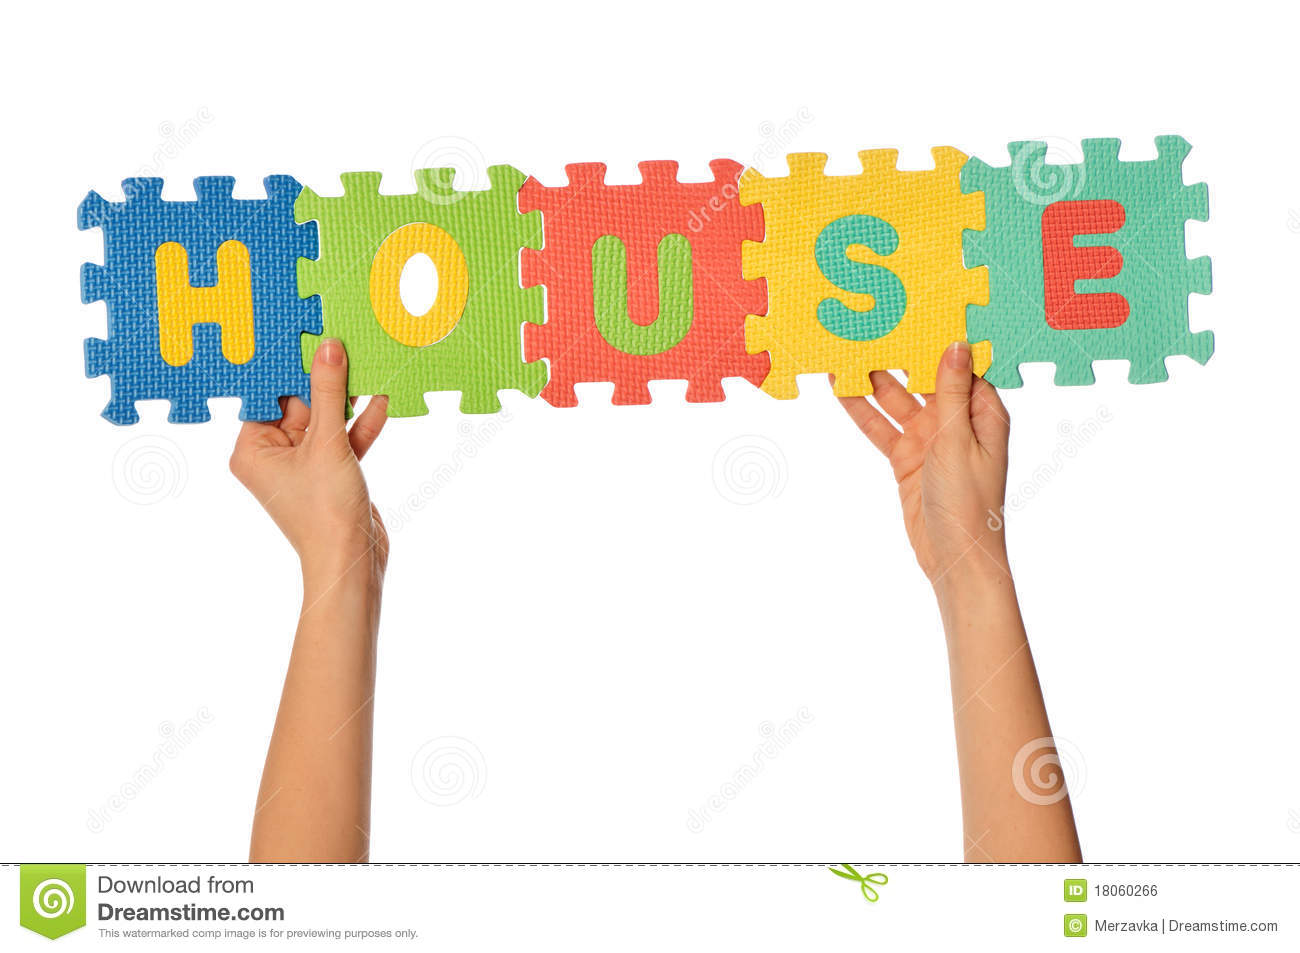 The Word House Royalty Free Stock Image - Image: 18060266